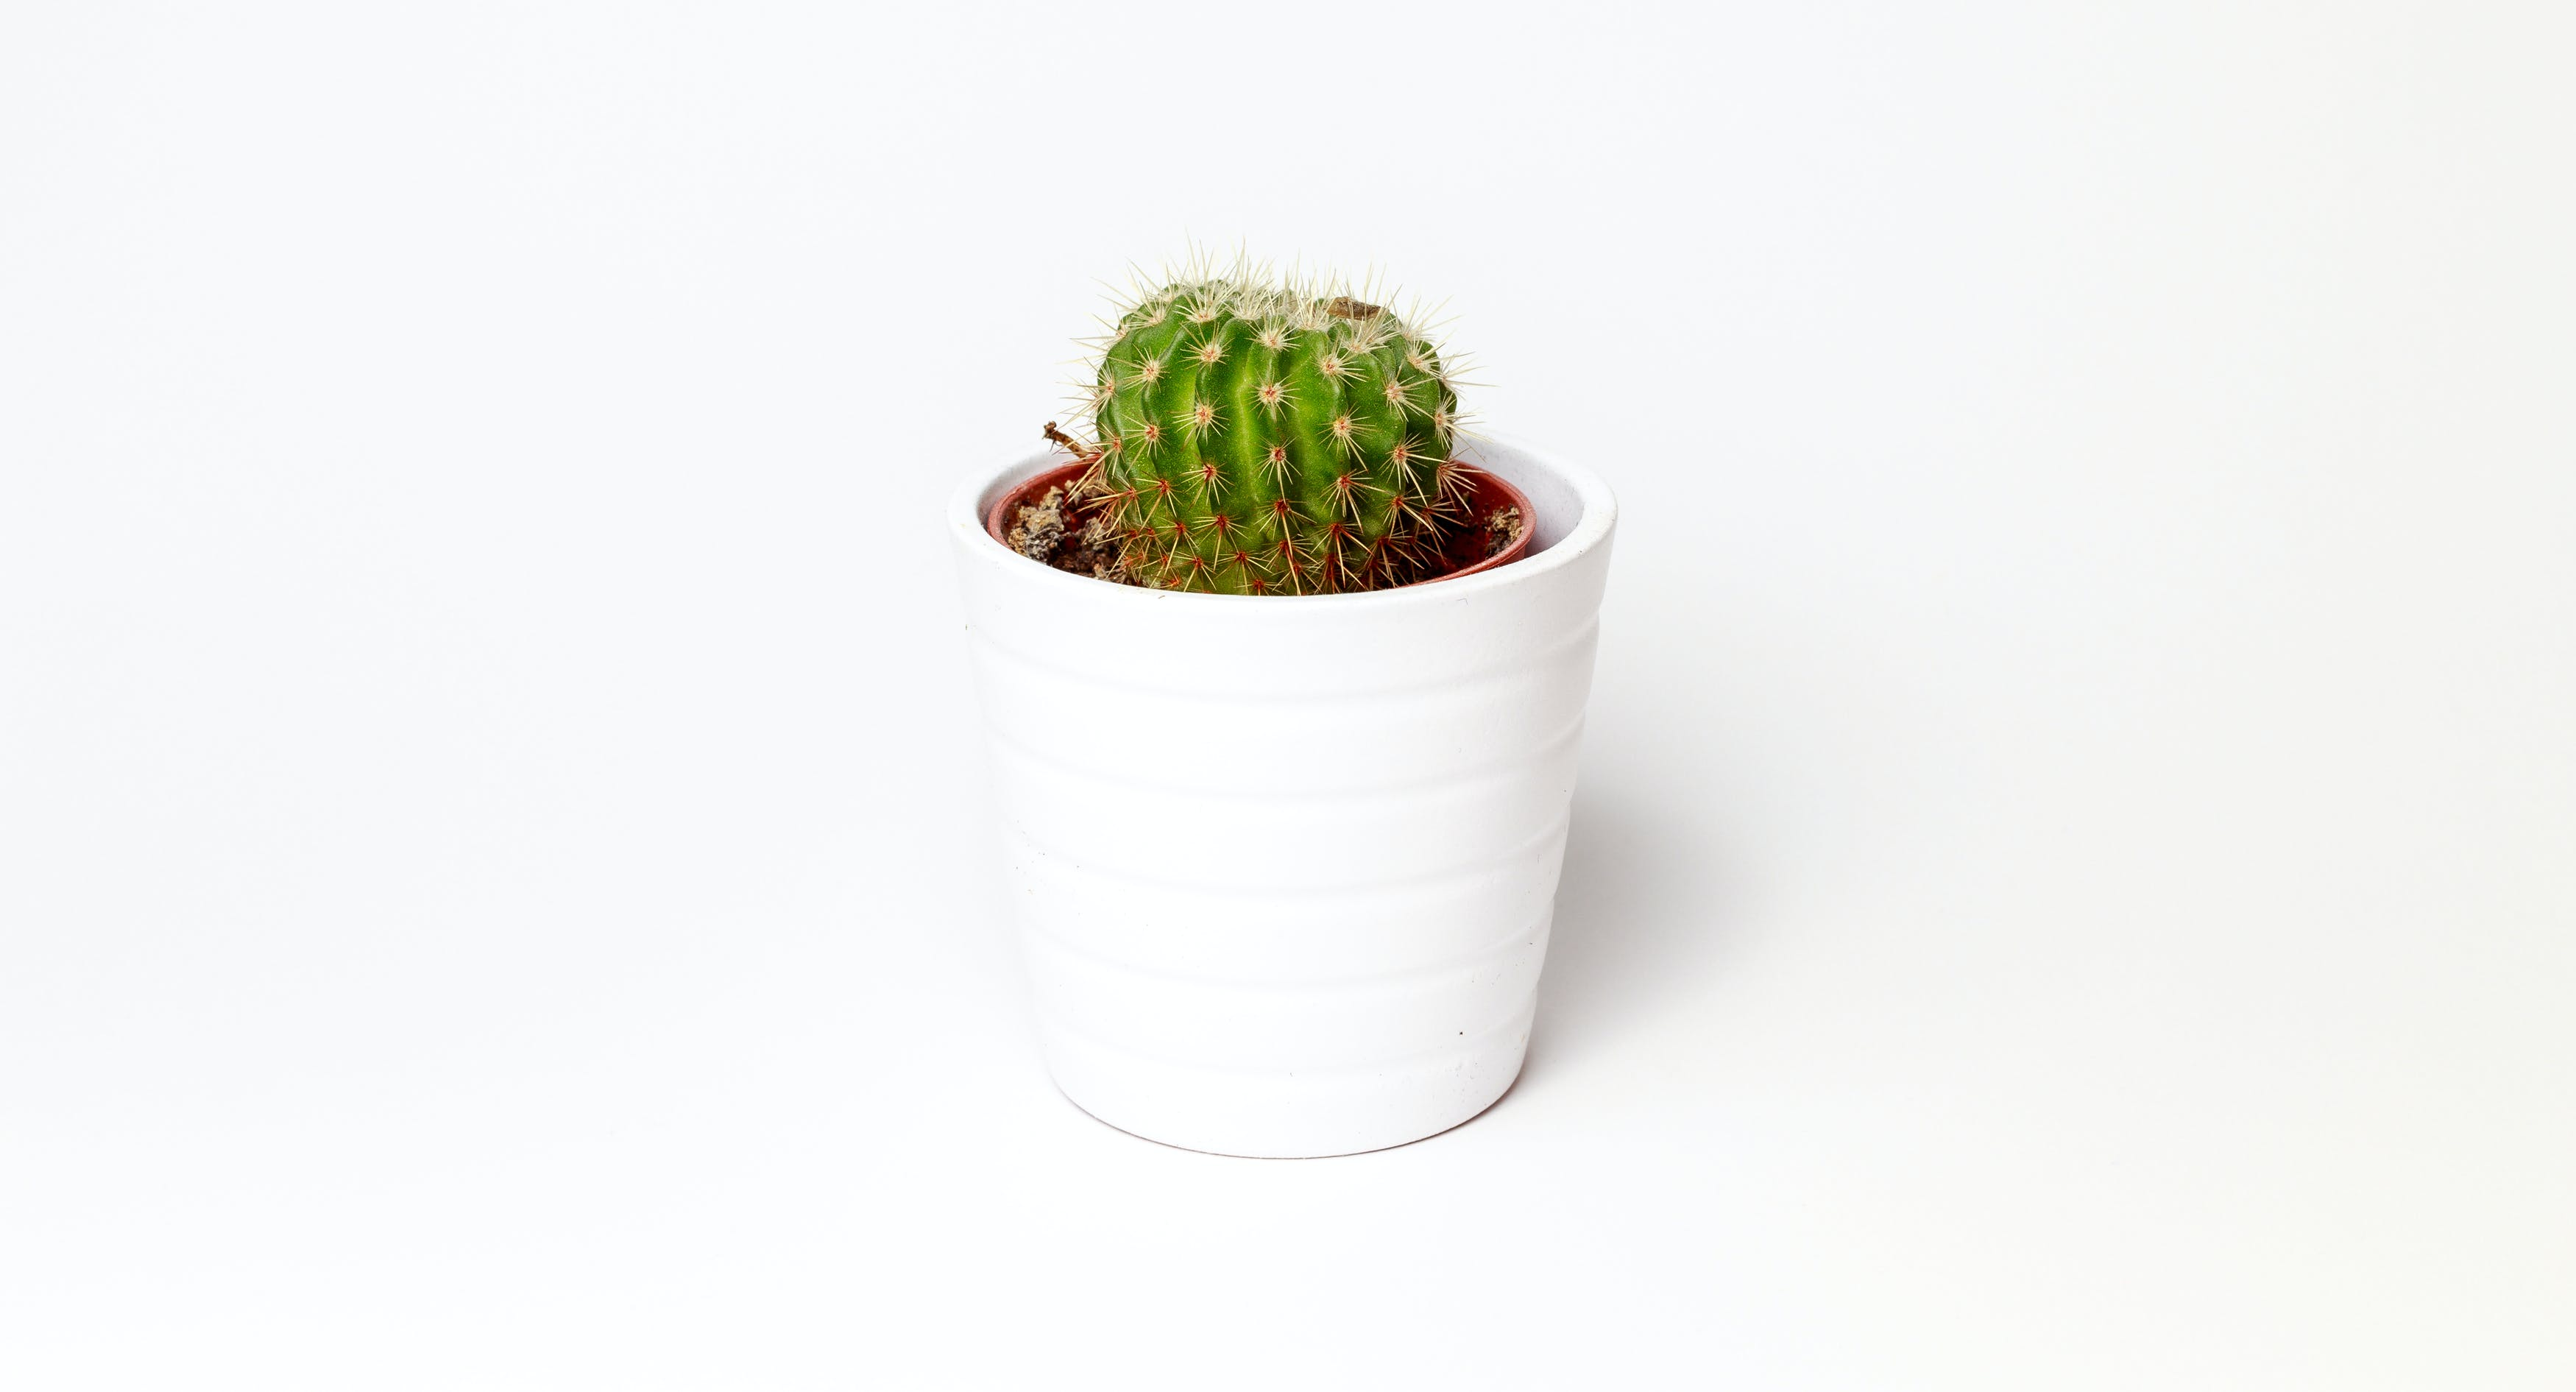 Free stock photo of plant, pot, white, cactus